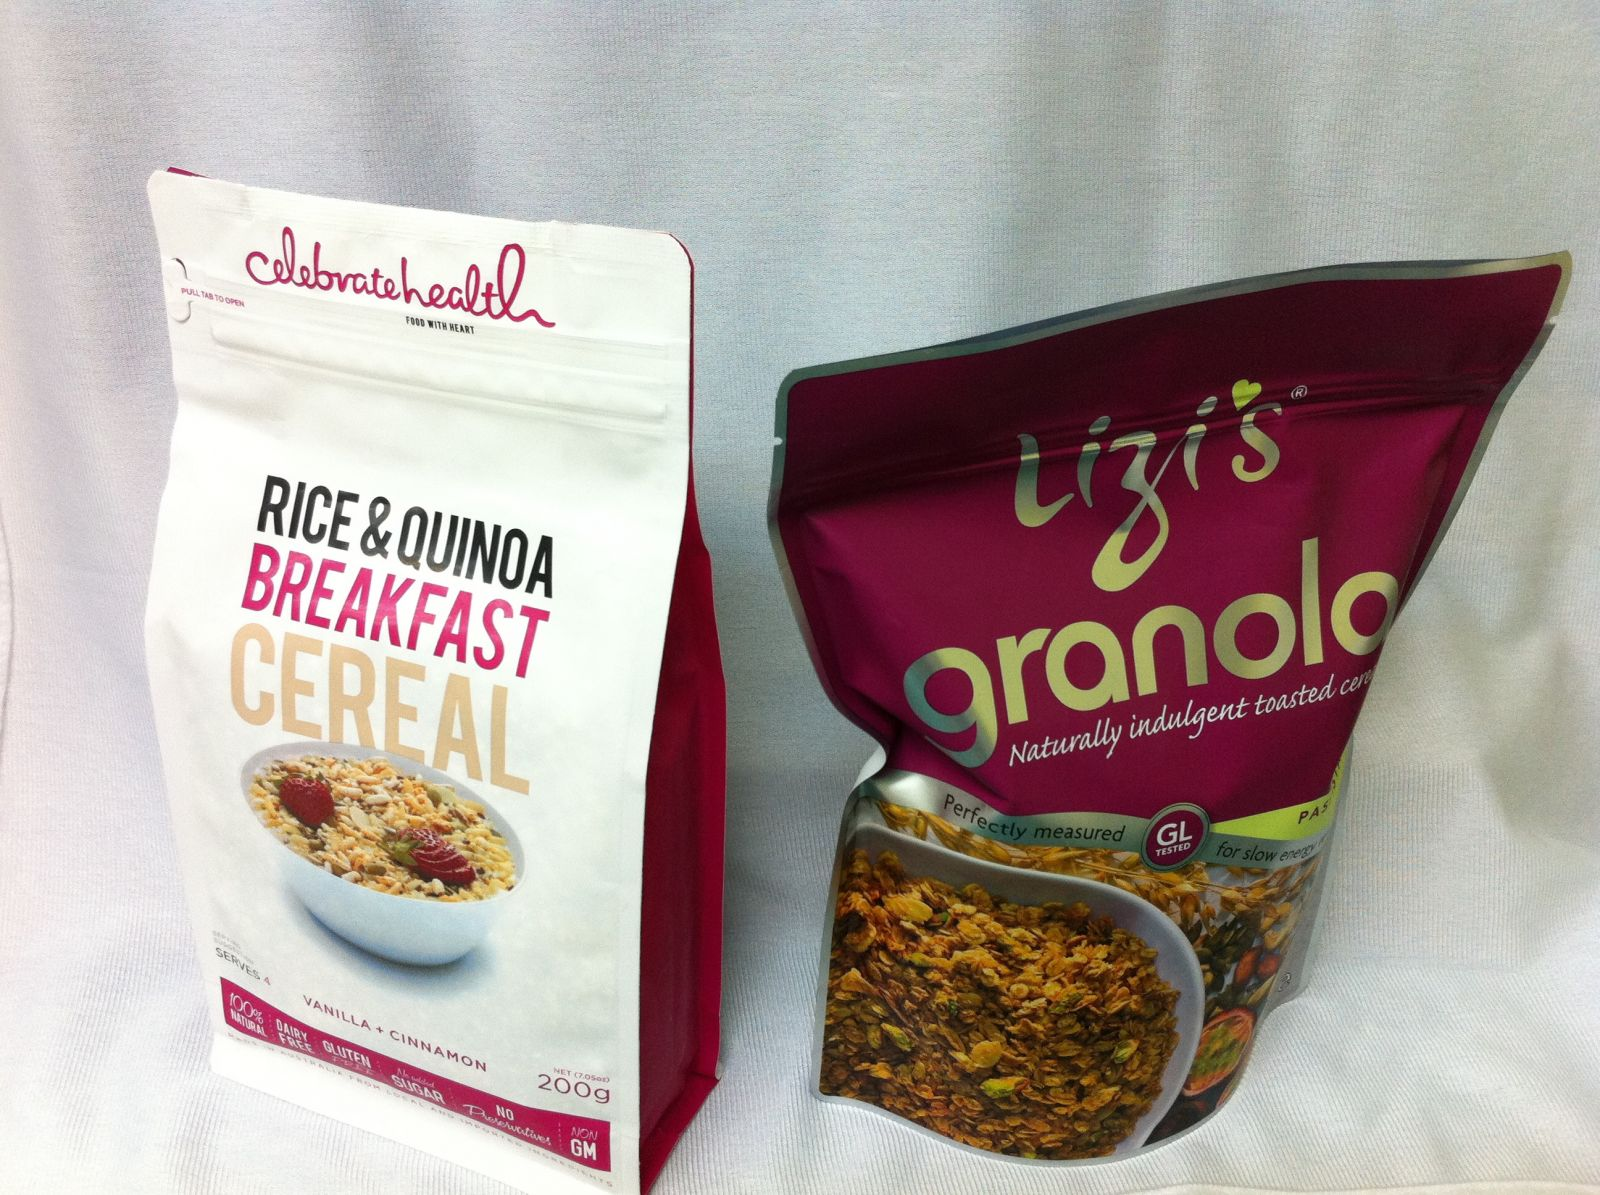 Cereal in Flexible Box Bag